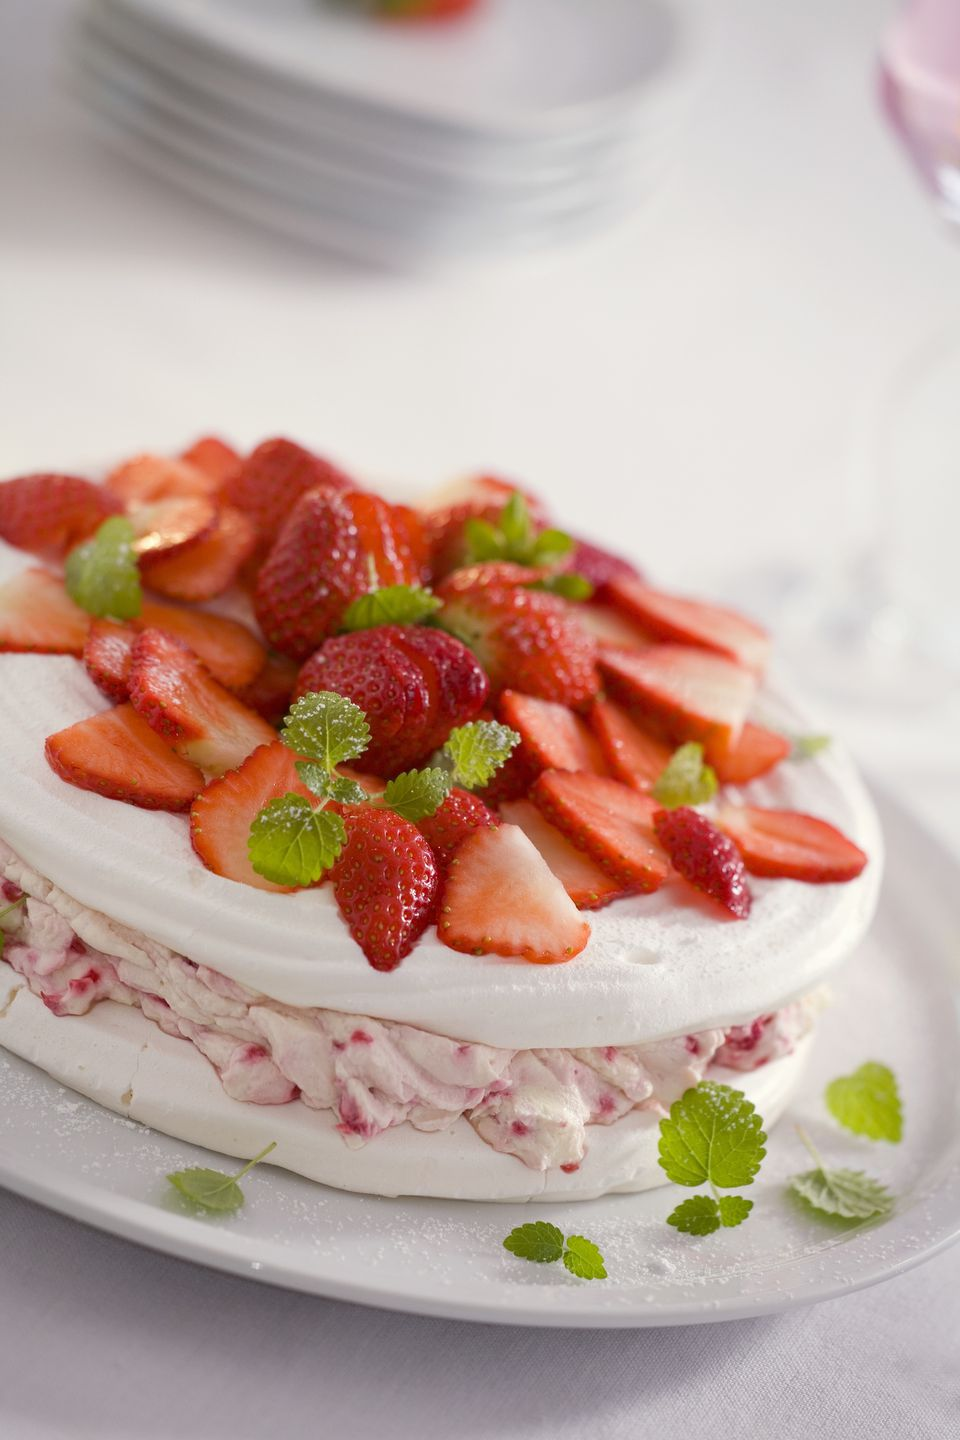 Meringue cake with strawberry cream and fresh strawberries